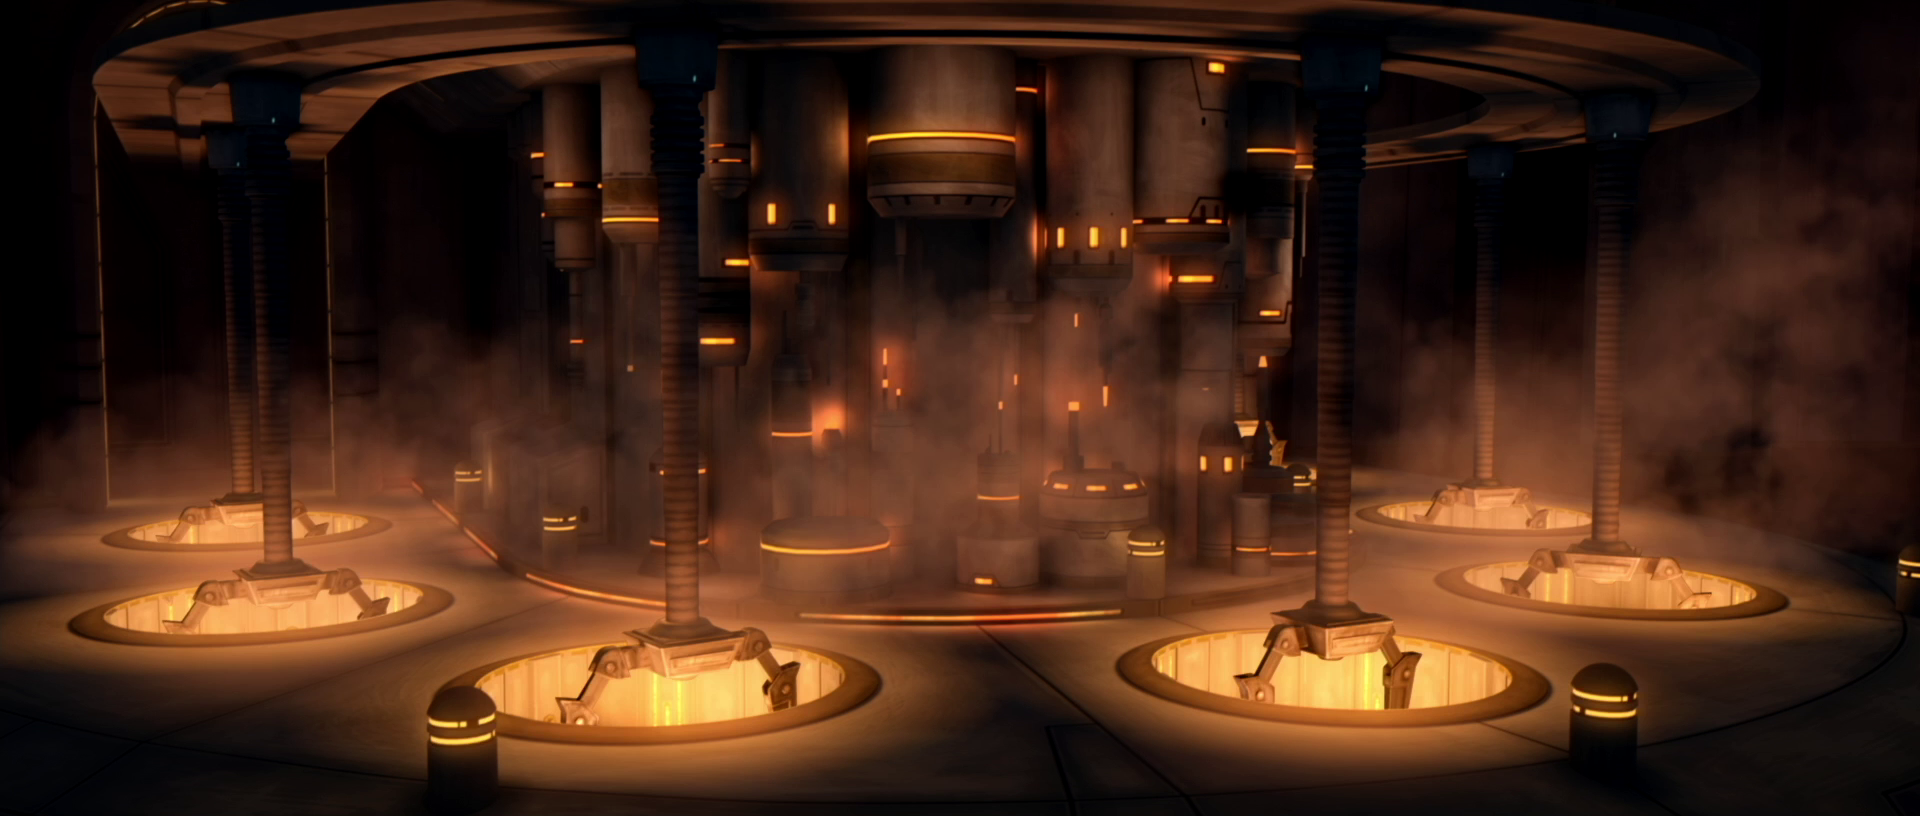 Jedi temple carbon freezing chamber.png